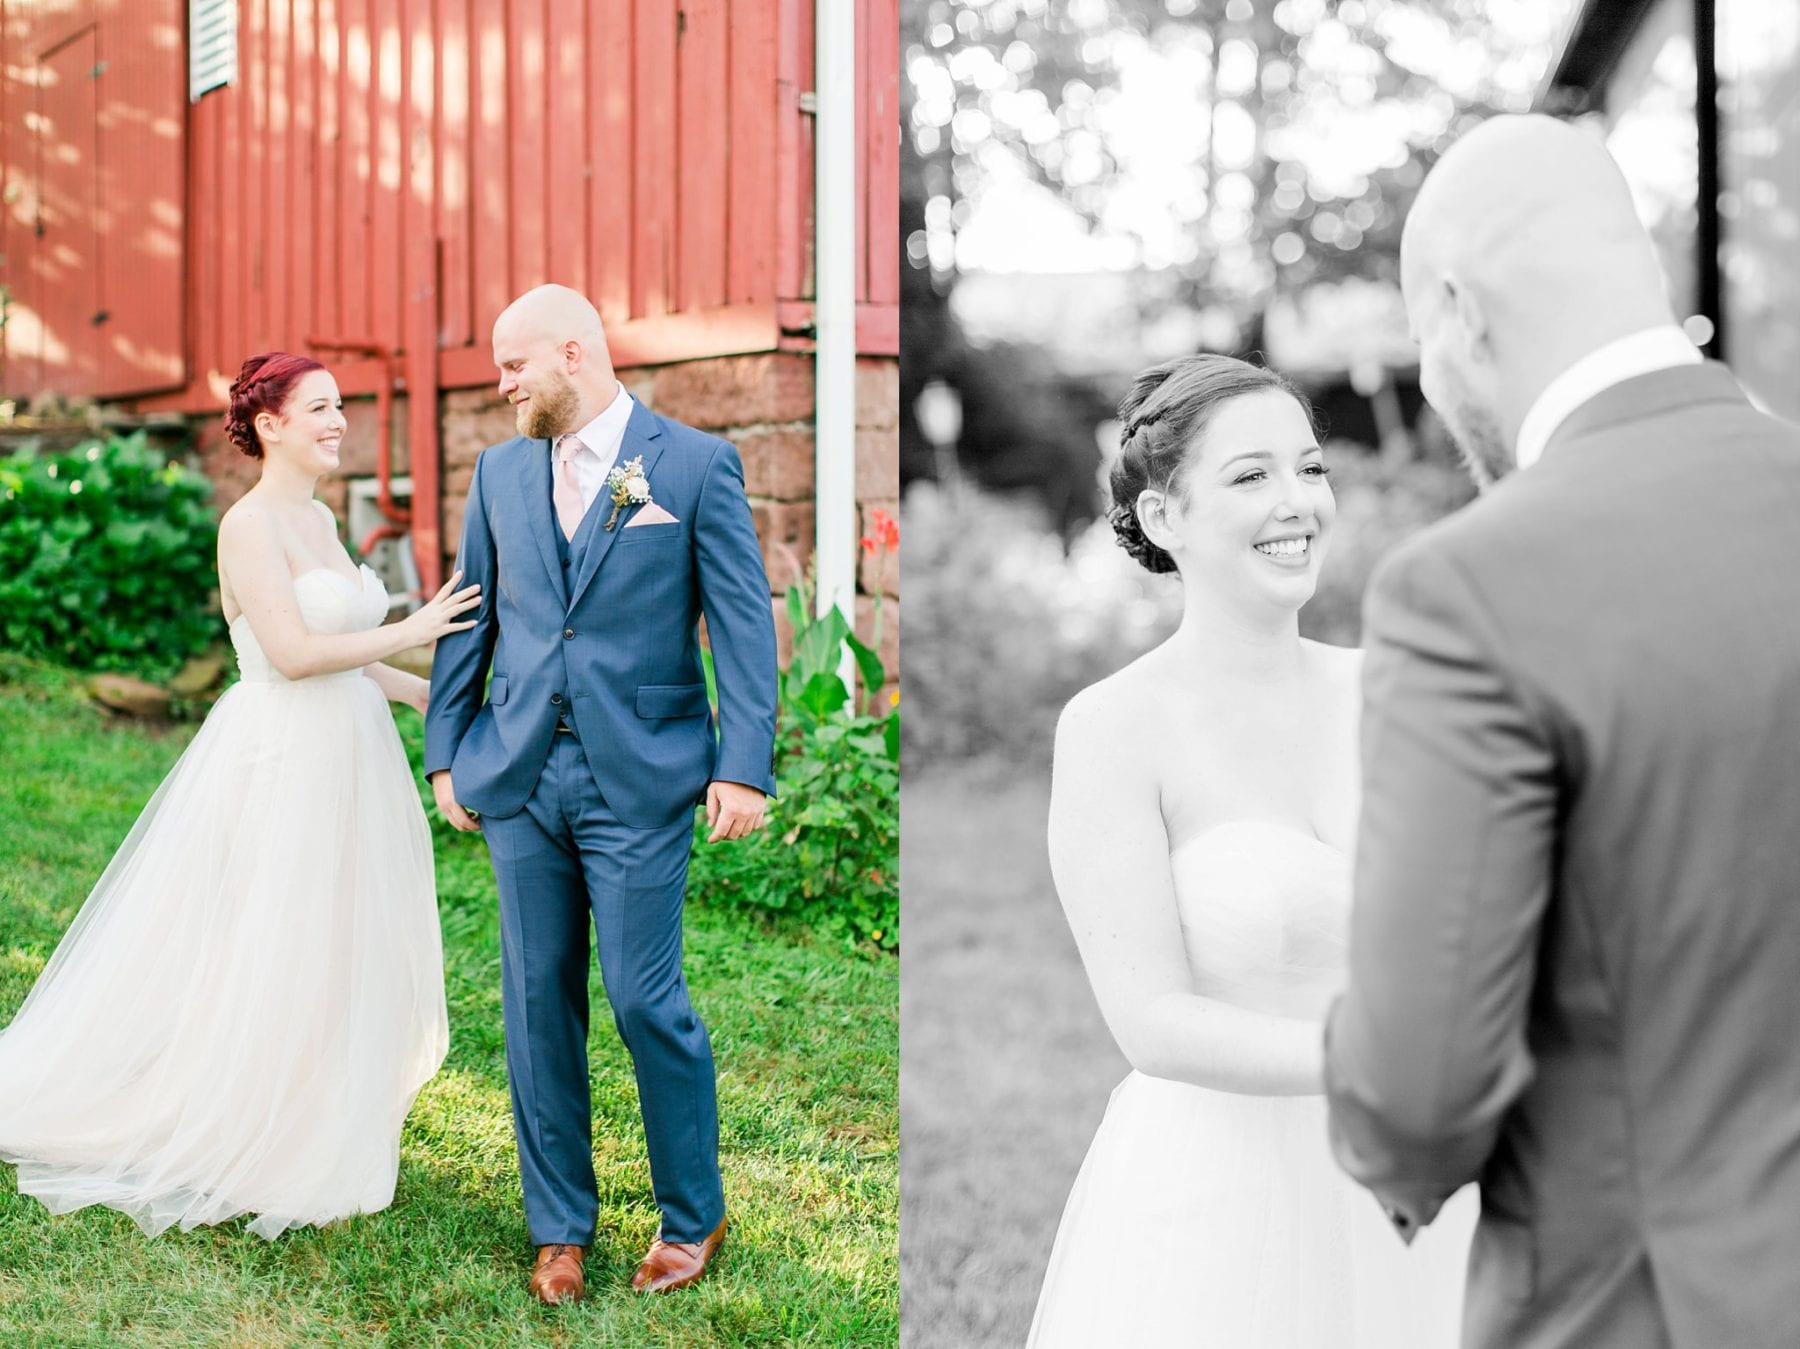 Rocklands Farm Wedding Virginia Wedding Photographer Megan Kelsey Photography Jessica & Jason-34.jpg